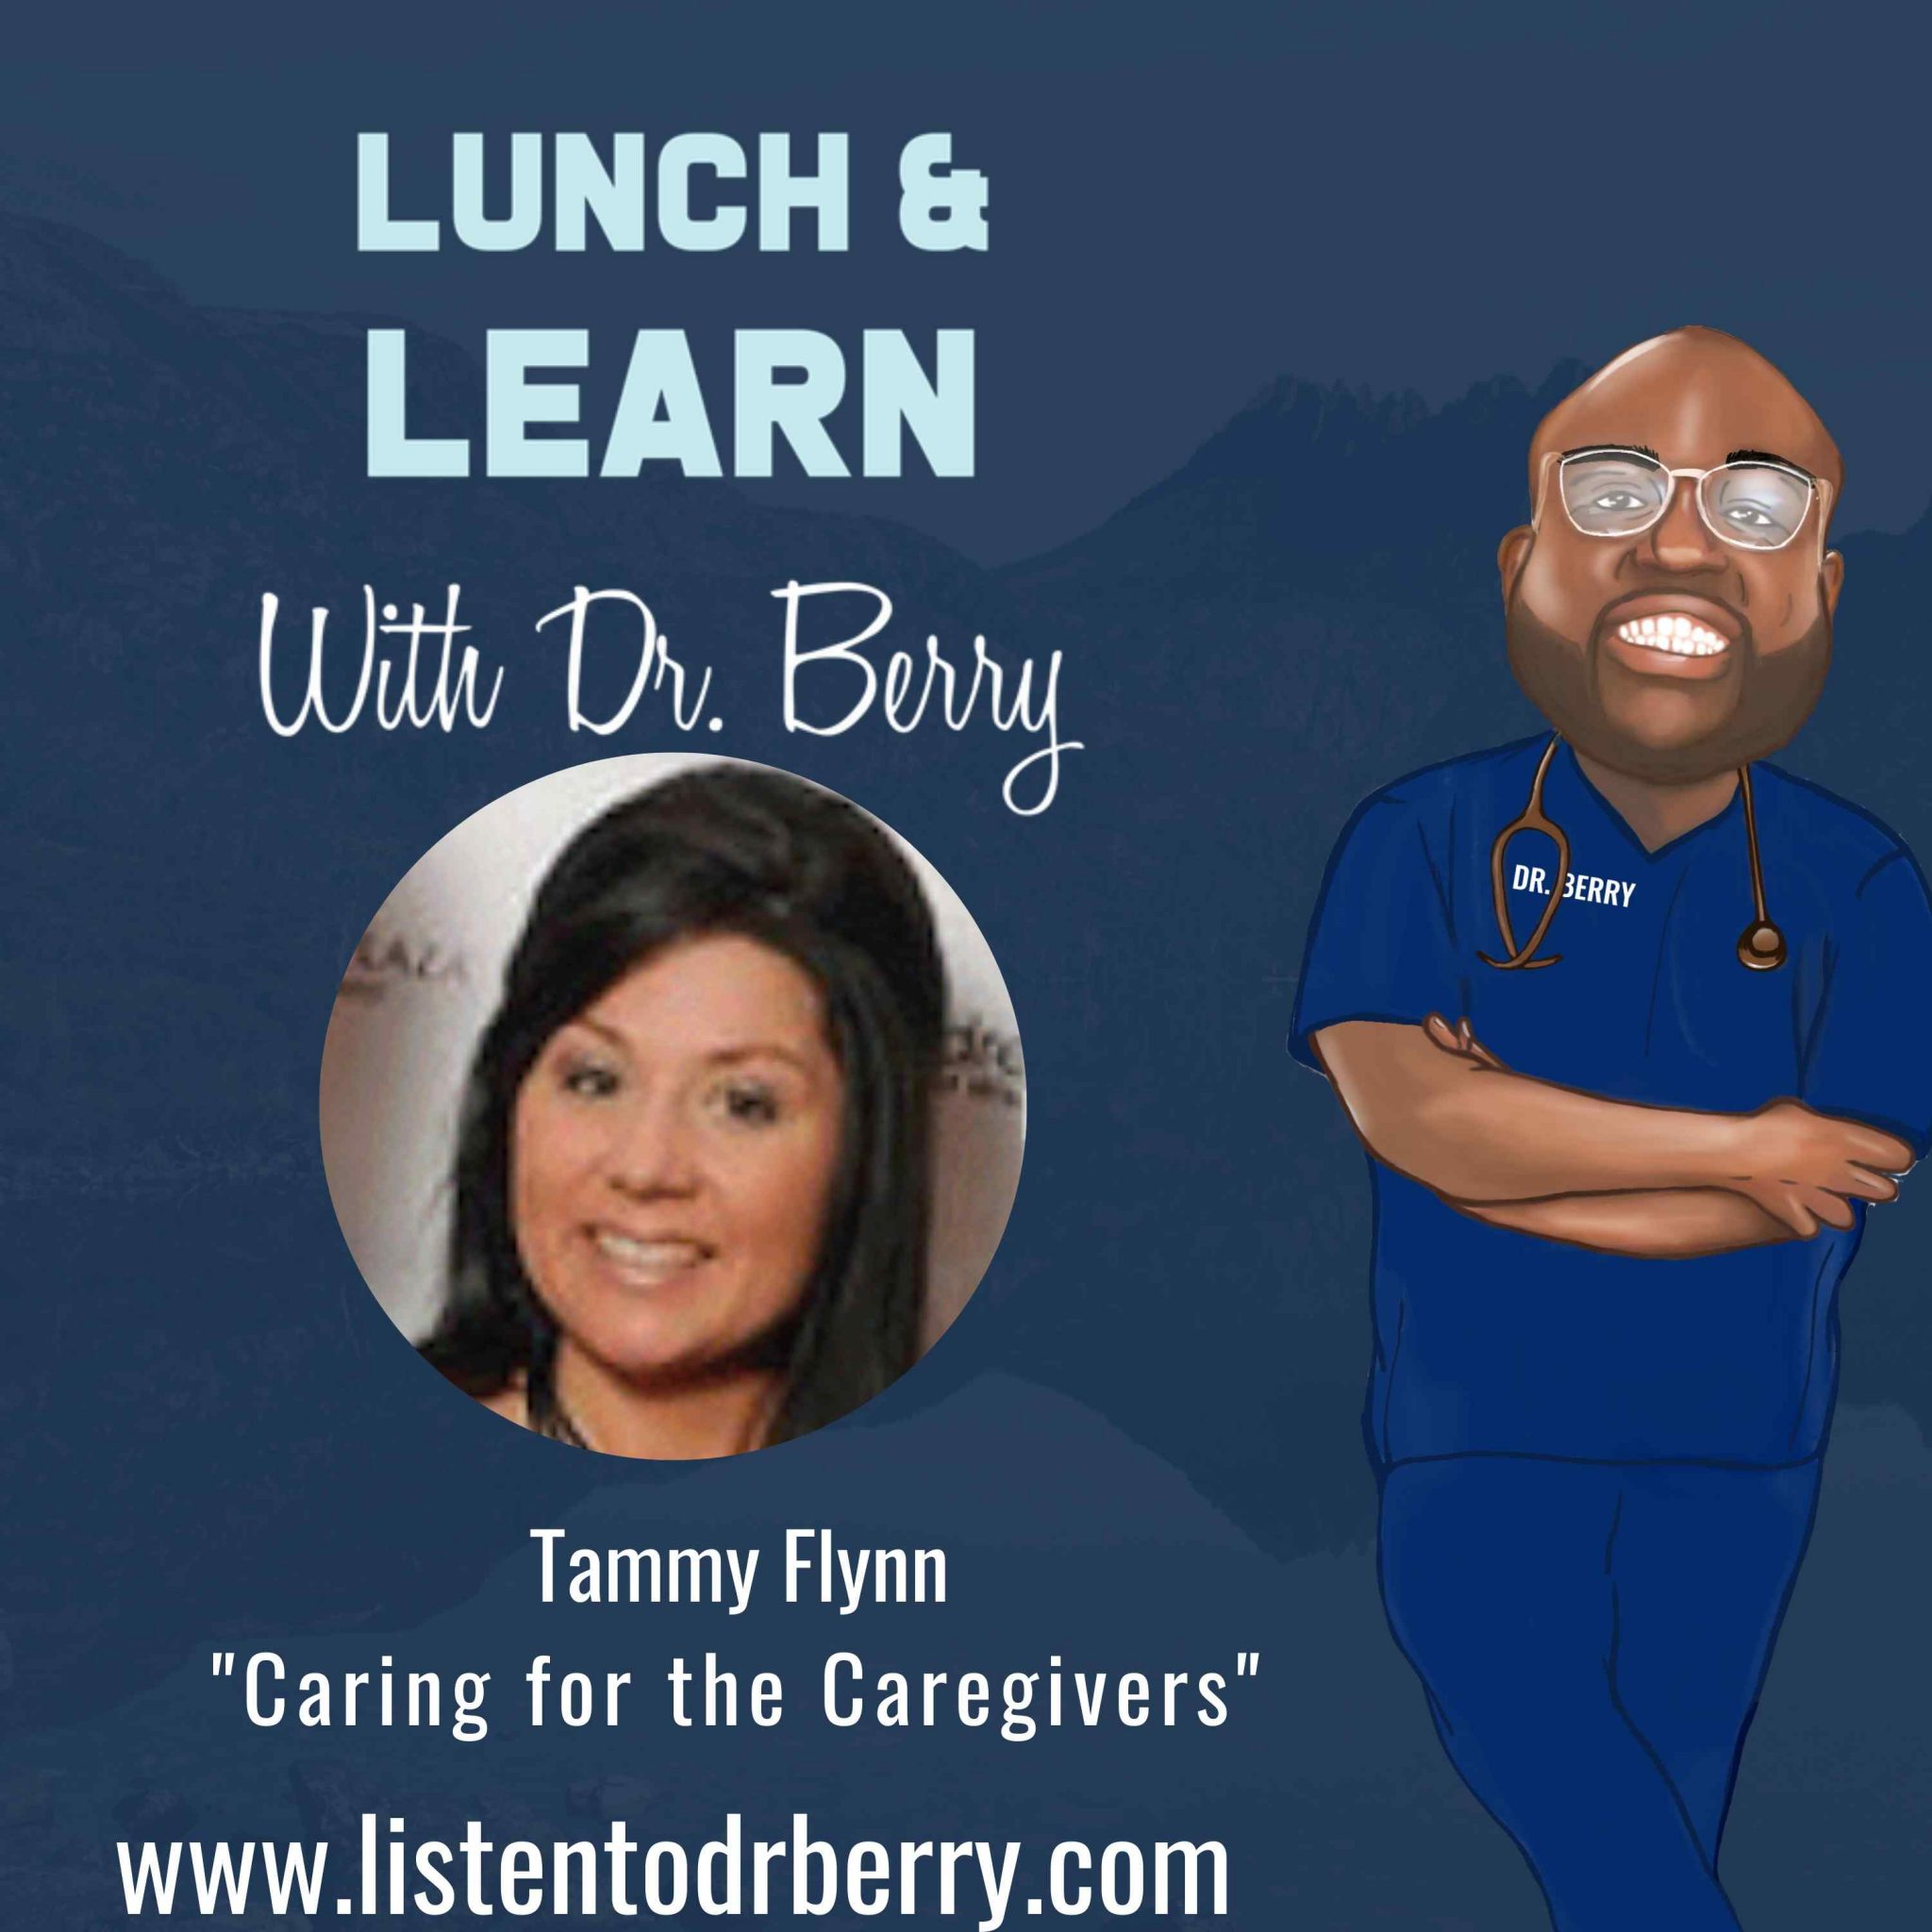 on-air advocate, Tammy Flynn, Lunch and Learn with Dr. Berry, Dr. Berry Pierre